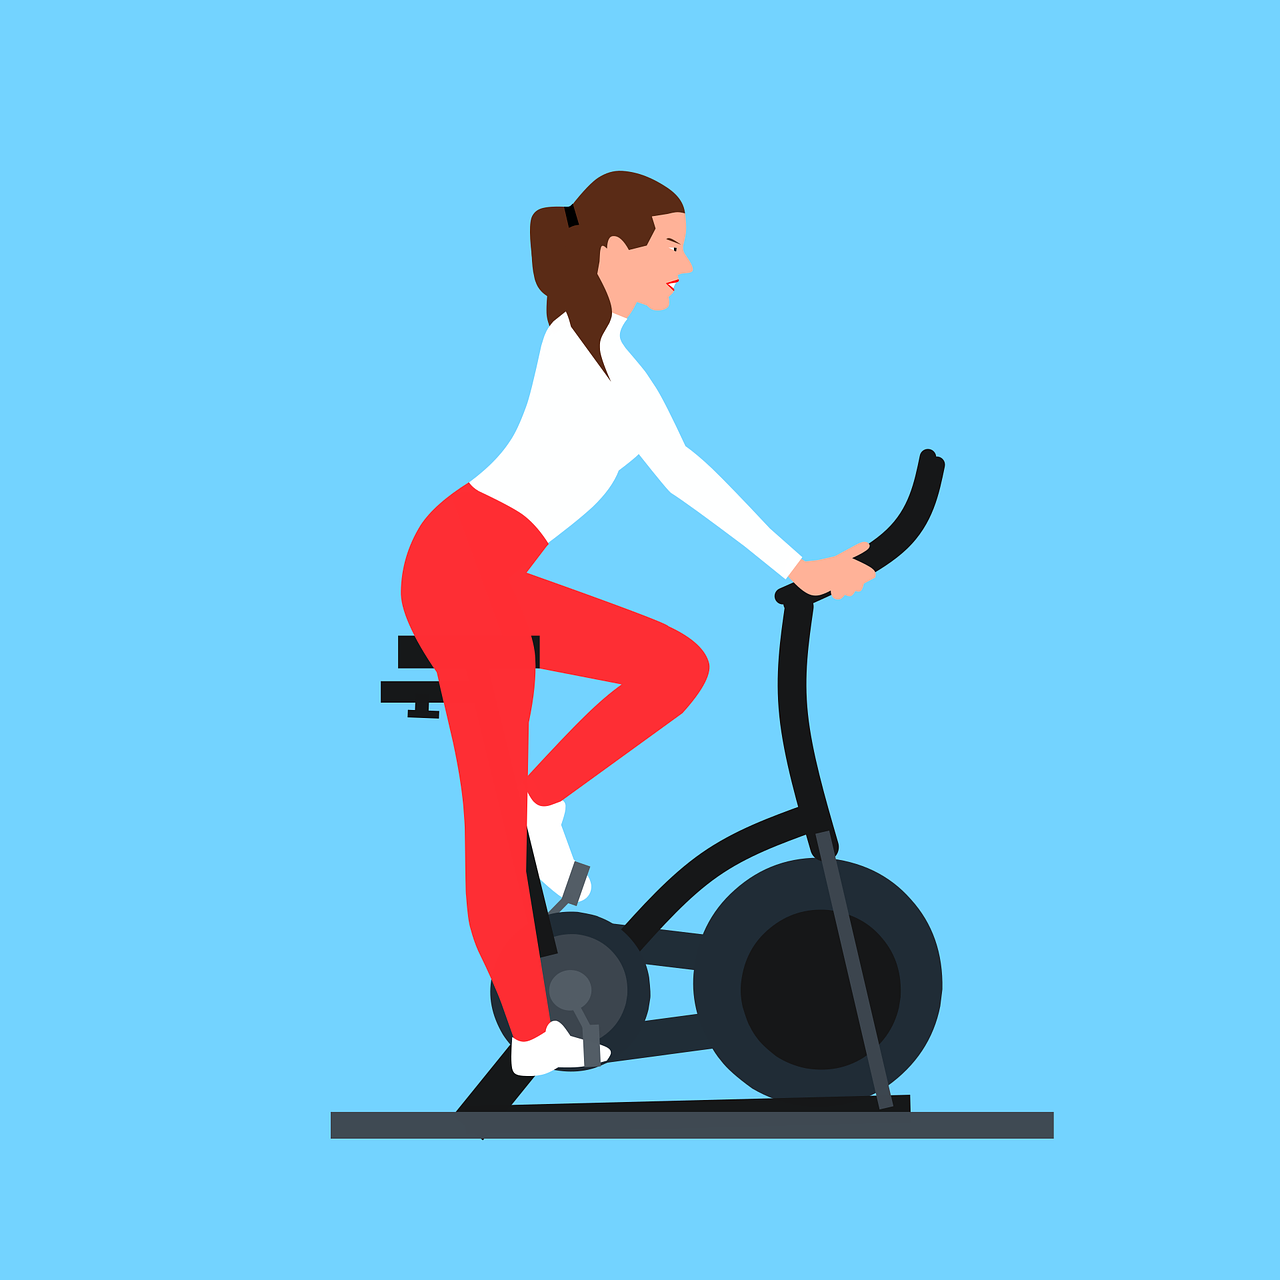 Woman Exercise Bike - Free vector graphic on Pixabay